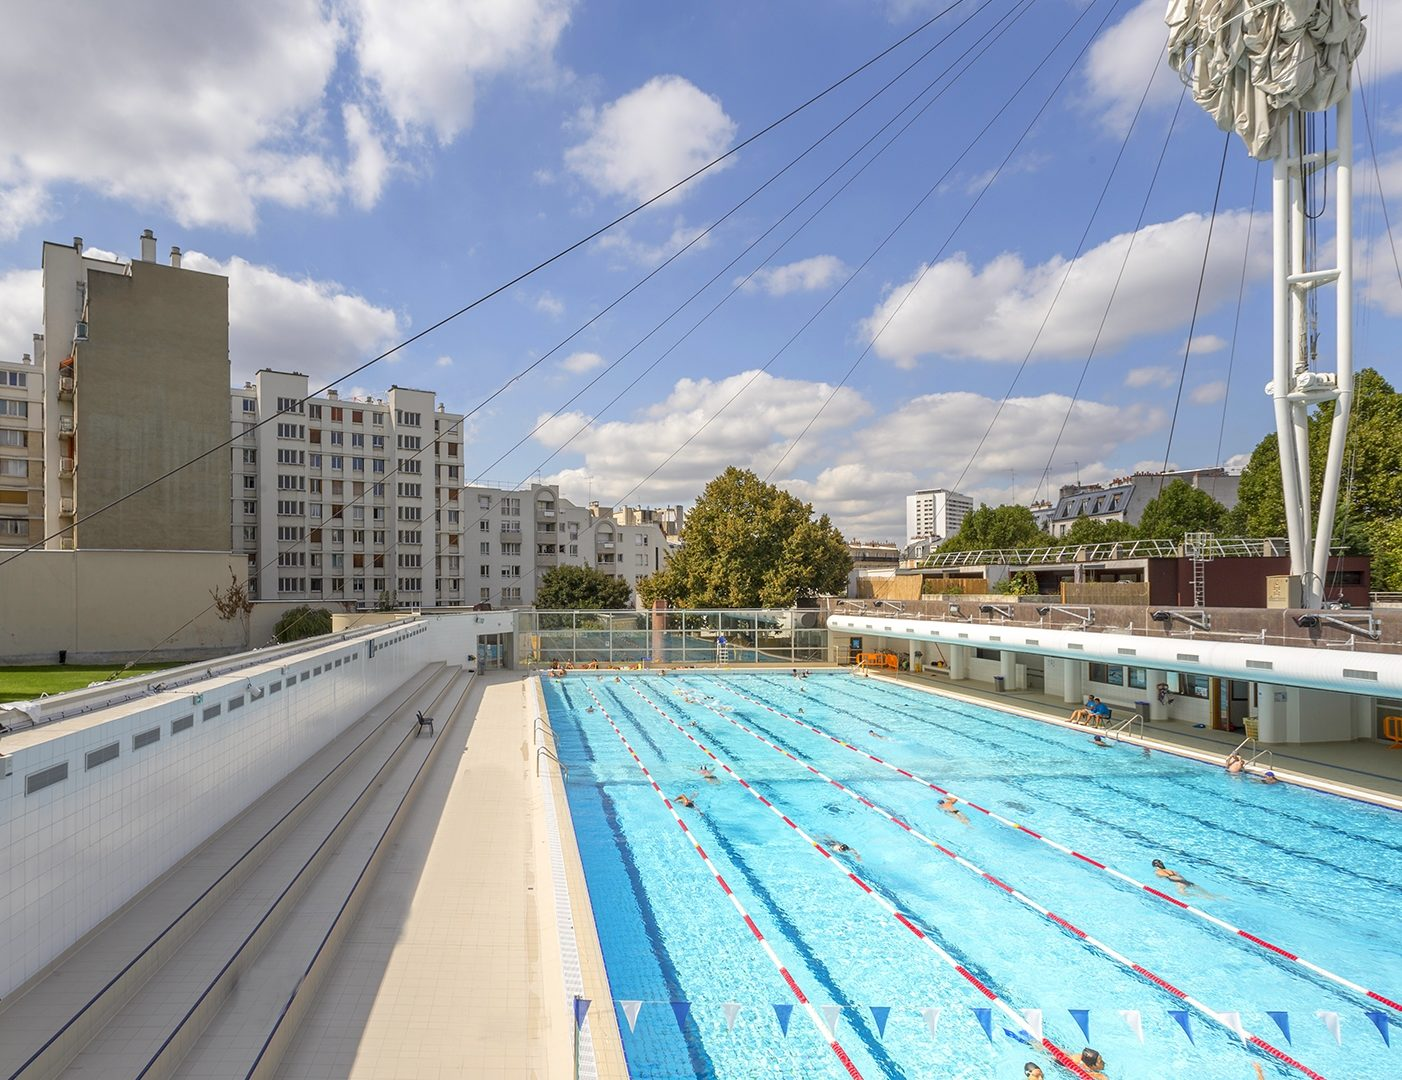 Piscine georges hermant paris 75 eau air syst me for Piscine georges hermant